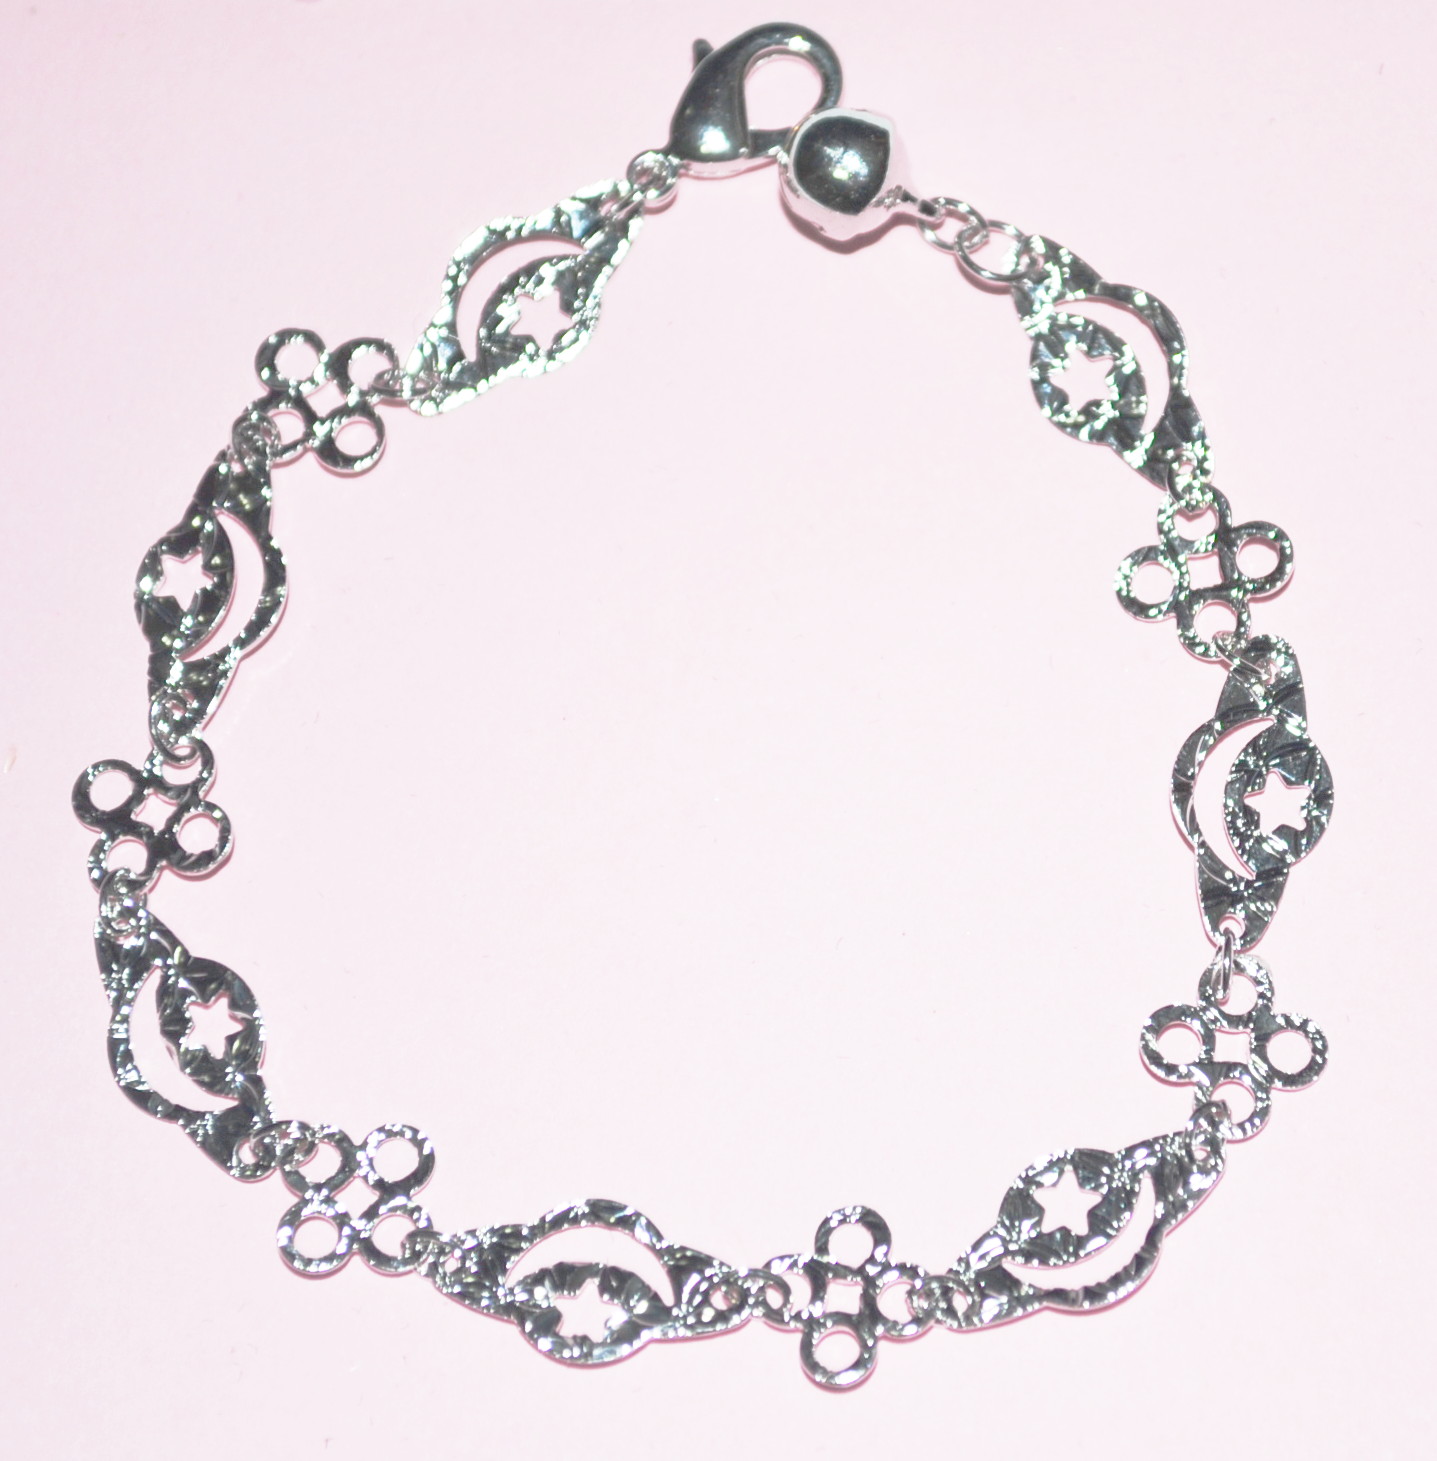 37cd96182 Simple pretty white gold filled bracelet · Jesimall · Online Store ...